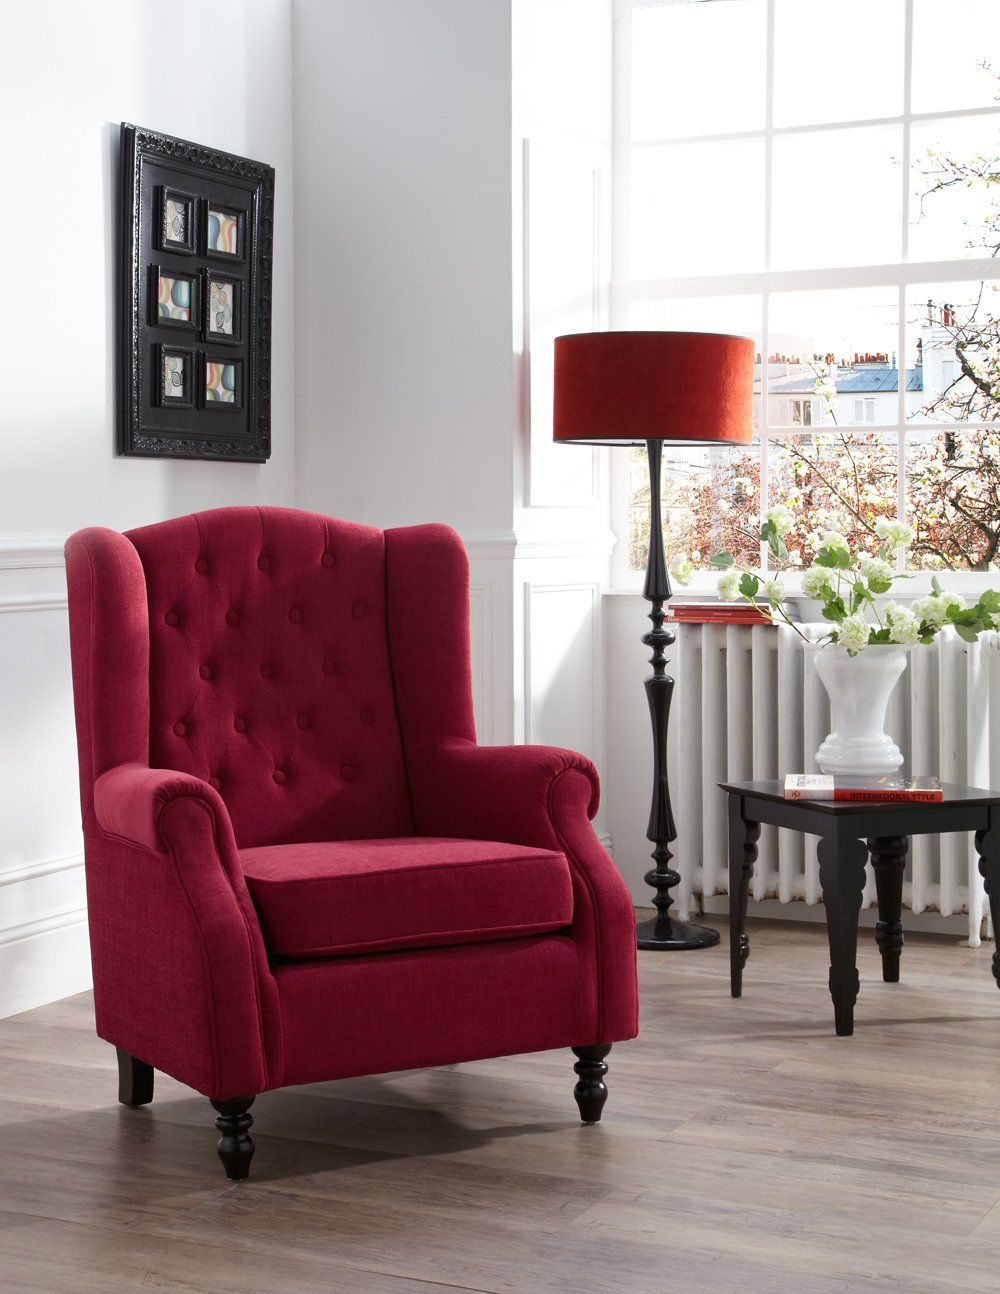 Milan Mink Fabric Chair Leather dining room chairs